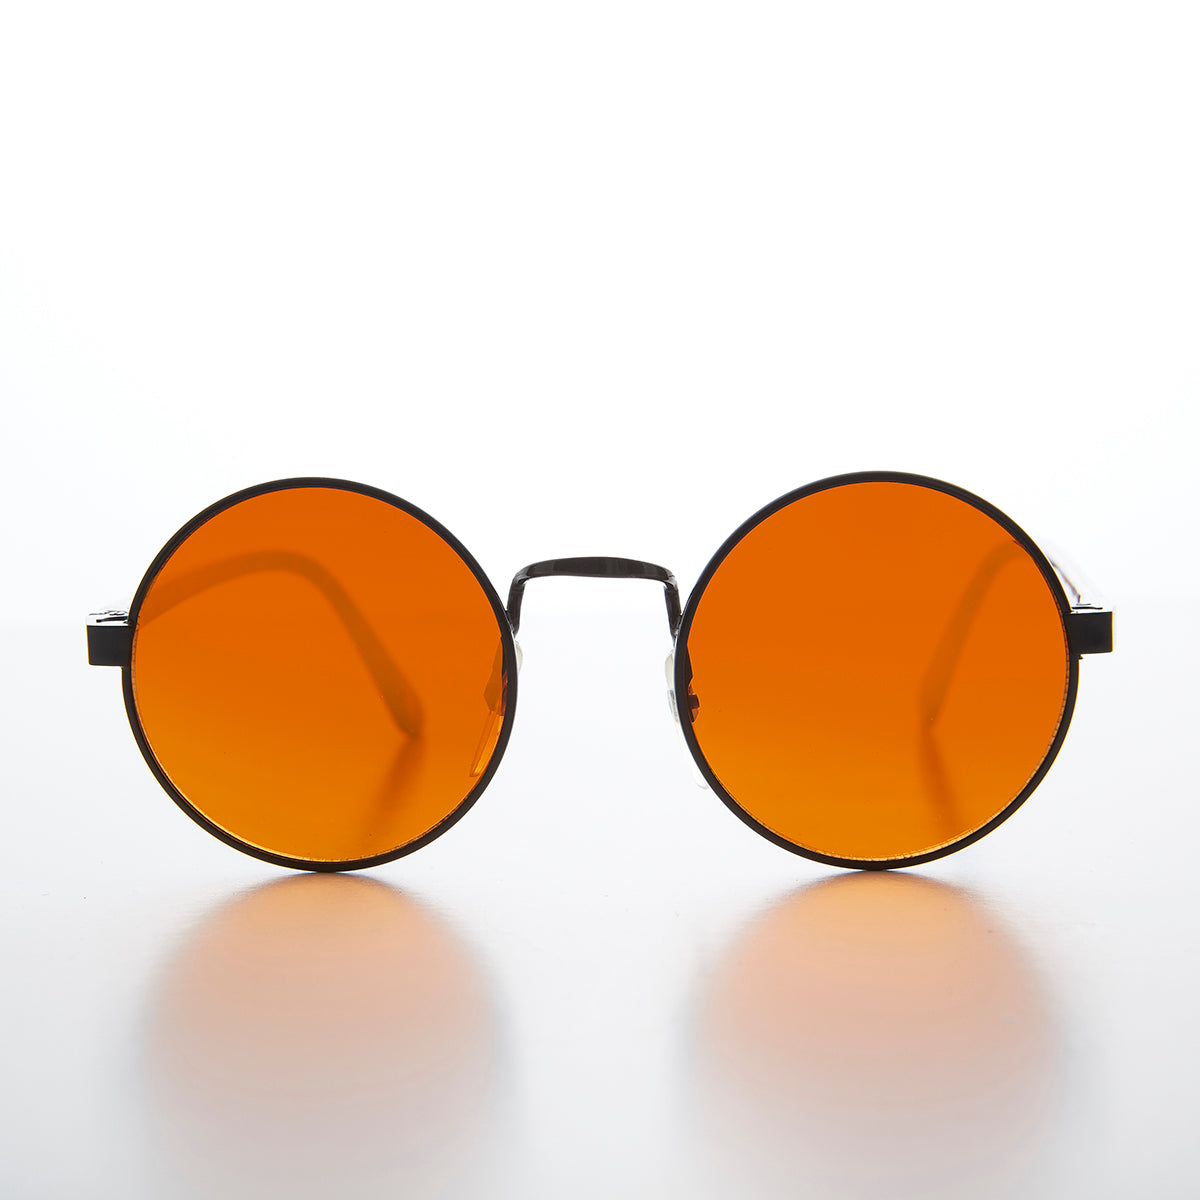 John Lennon Round Amber Blue Light Blocking Vintage Sunglass